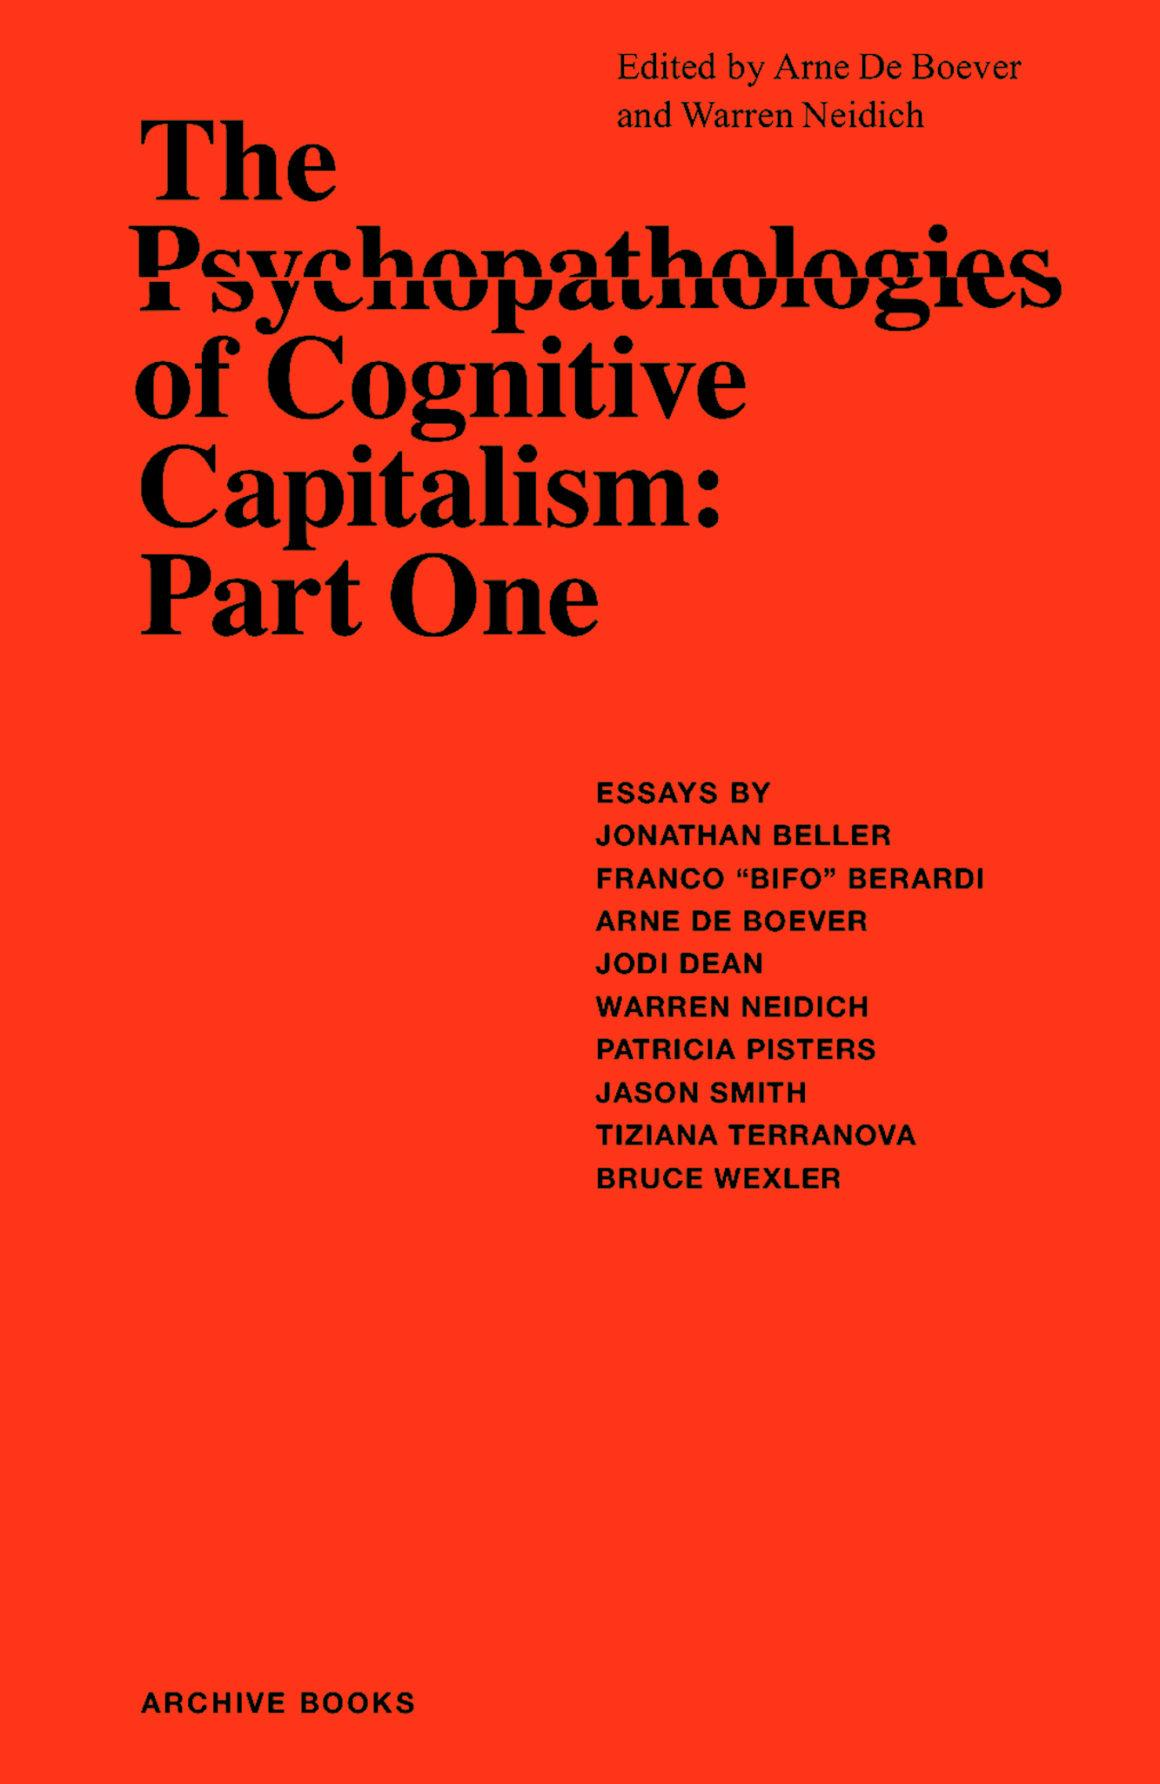 The Psychopathologies of Cognitive Capitalism. Part One